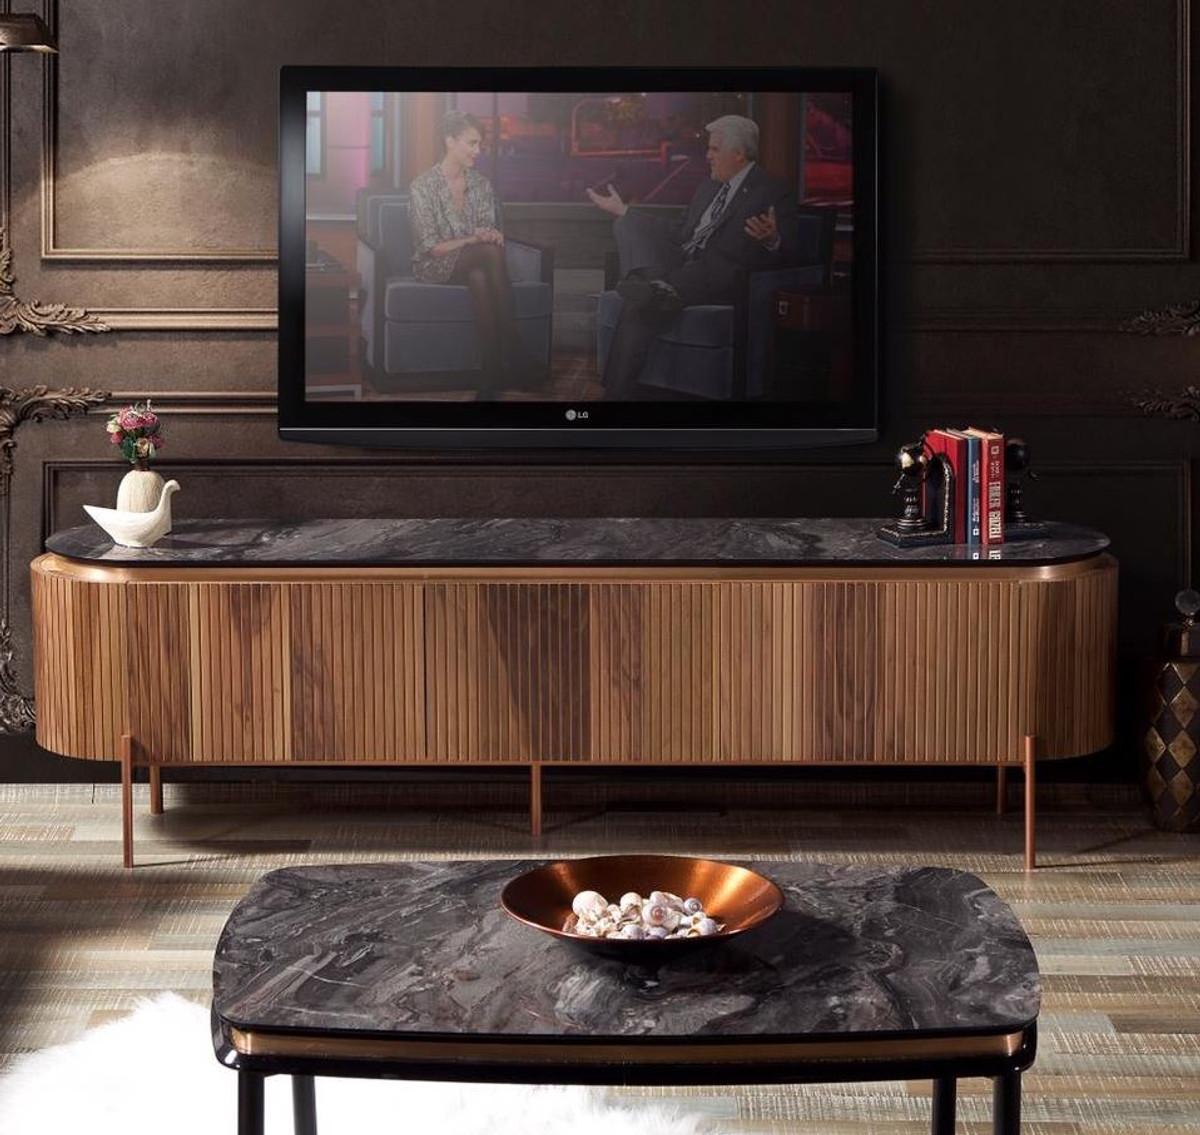 Casa Padrino Luxury Tv Cabinet Brown Black Copper 208 X 48 X H 57 Cm Tv Cabinet With 4 Doors And Glass Top In Marble Look Luxury Living Room Furniture